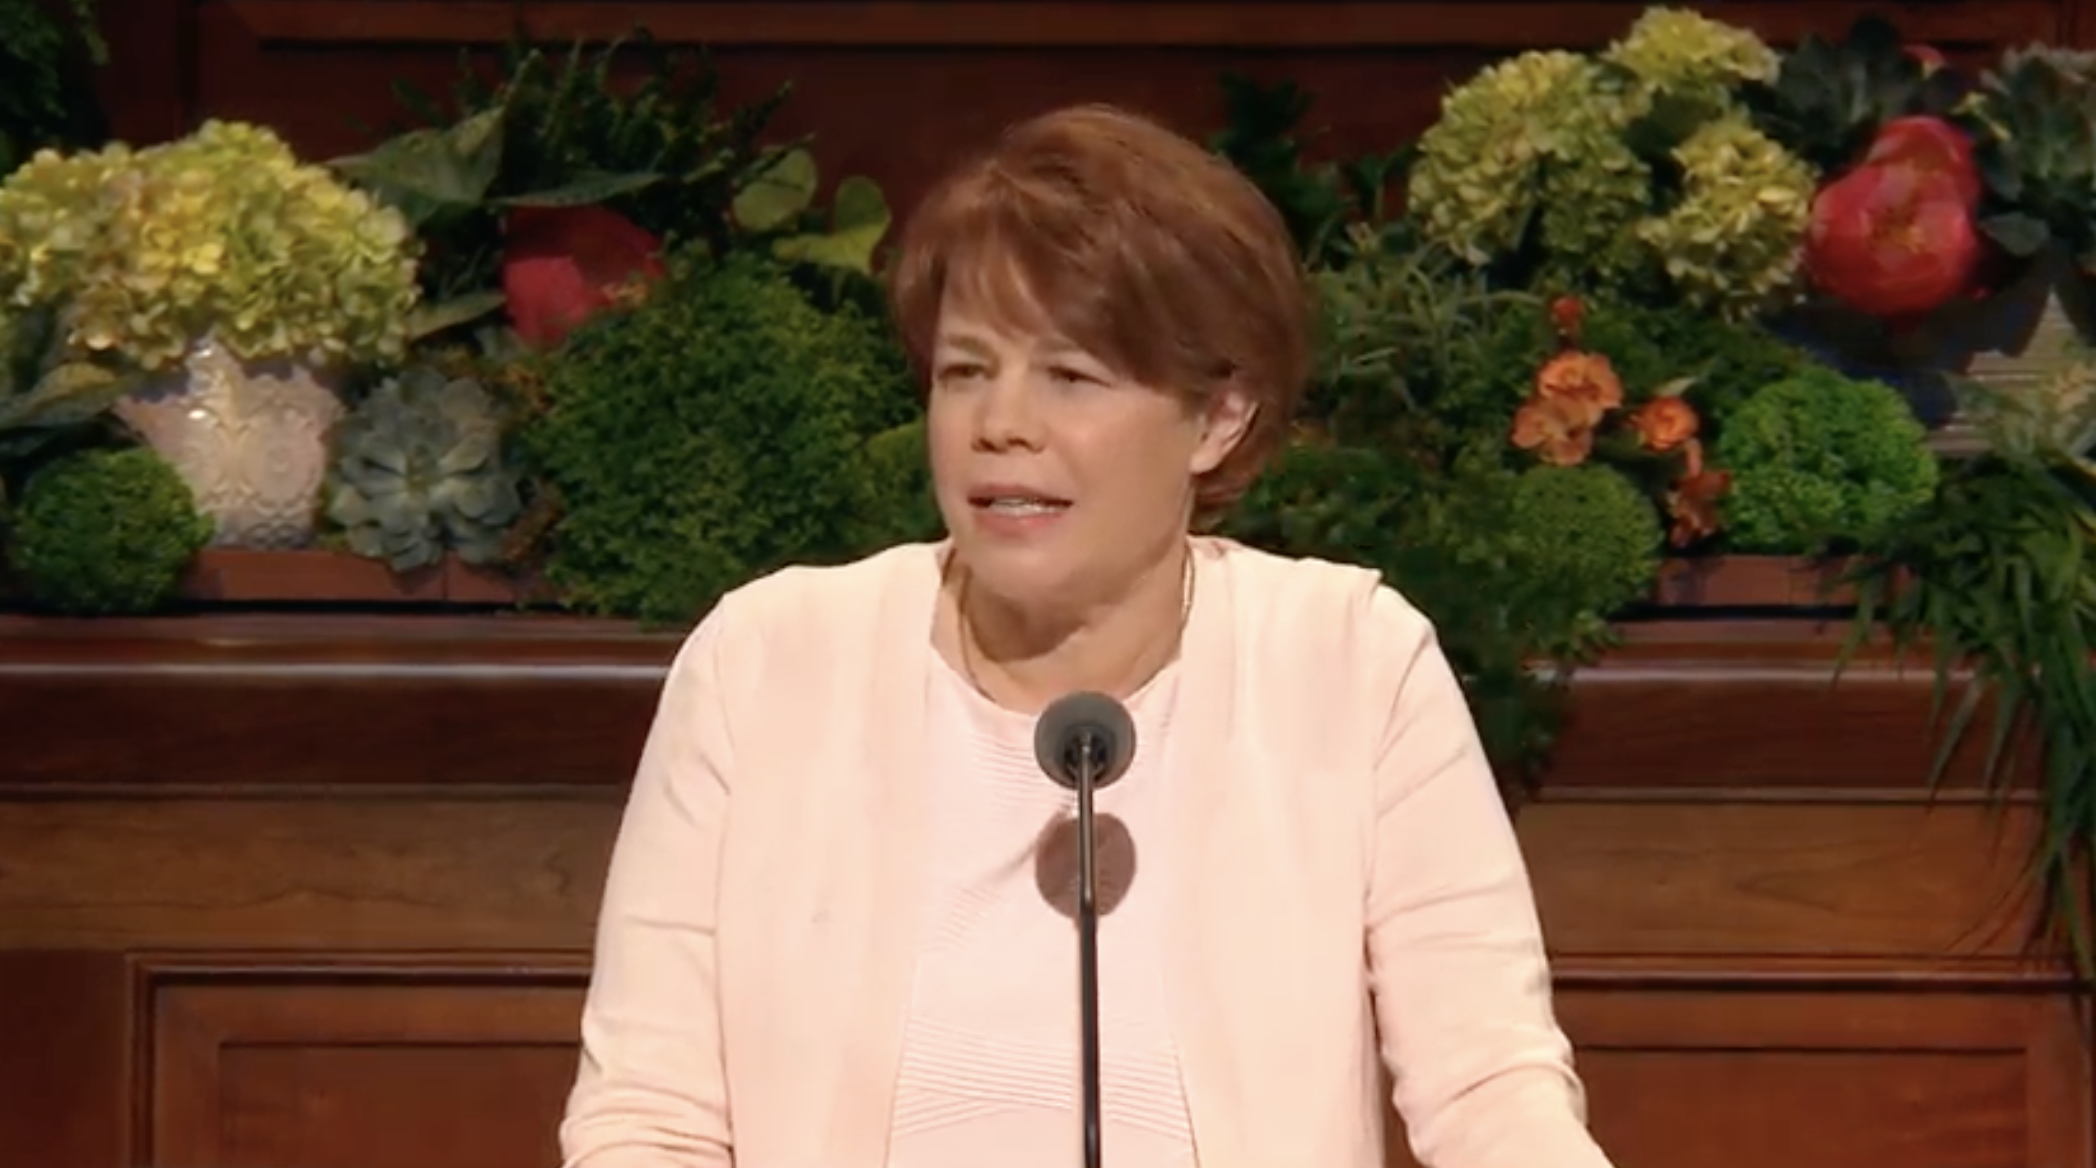 Sister Sharon Eubank, first counselor in the Relief Society general presidency, gives her address during the Sunday morning session of the 189th Annual General Conference on April 7, 2019.